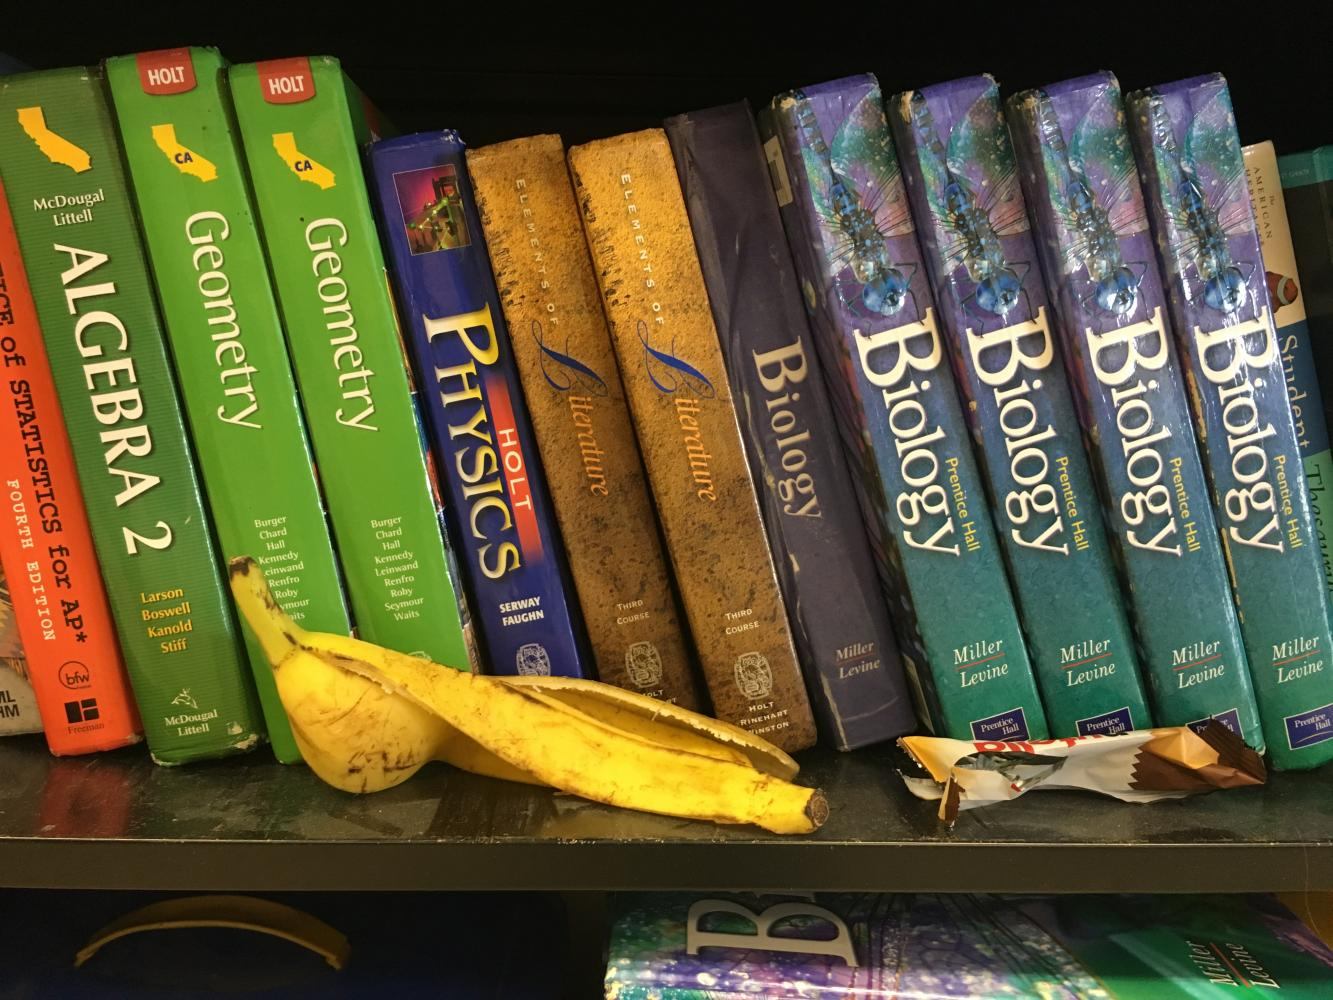 A half-eaten rotten banana is among one of the many old food items librarians have found